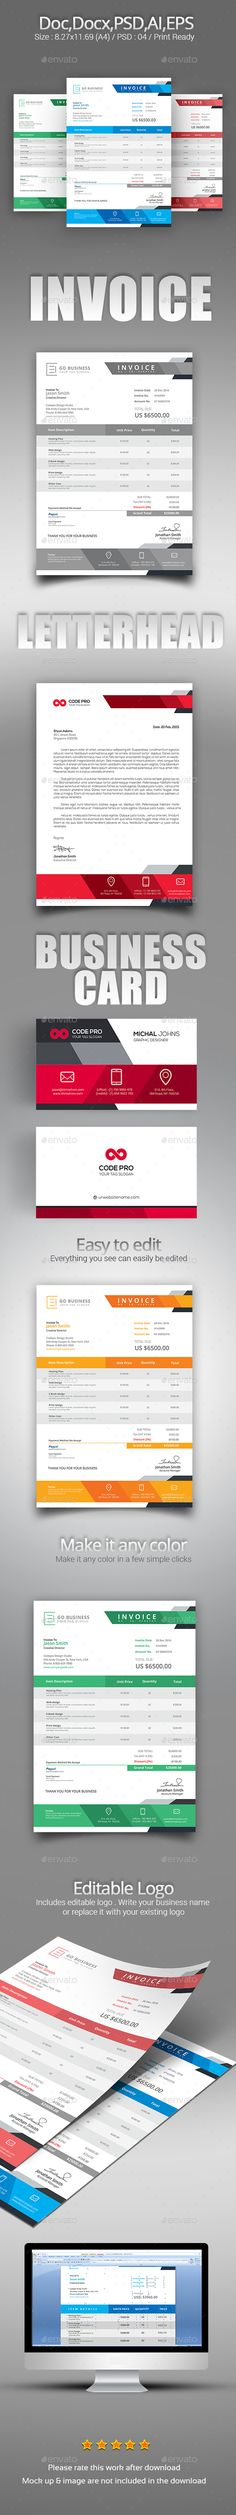 Business Letter Templates Free Download%0A Buy The Invoice Set by zeropixels on GraphicRiver  FEATURES  CMYK Color in   bleed Business card in with bleed Business Letterhead in with blee